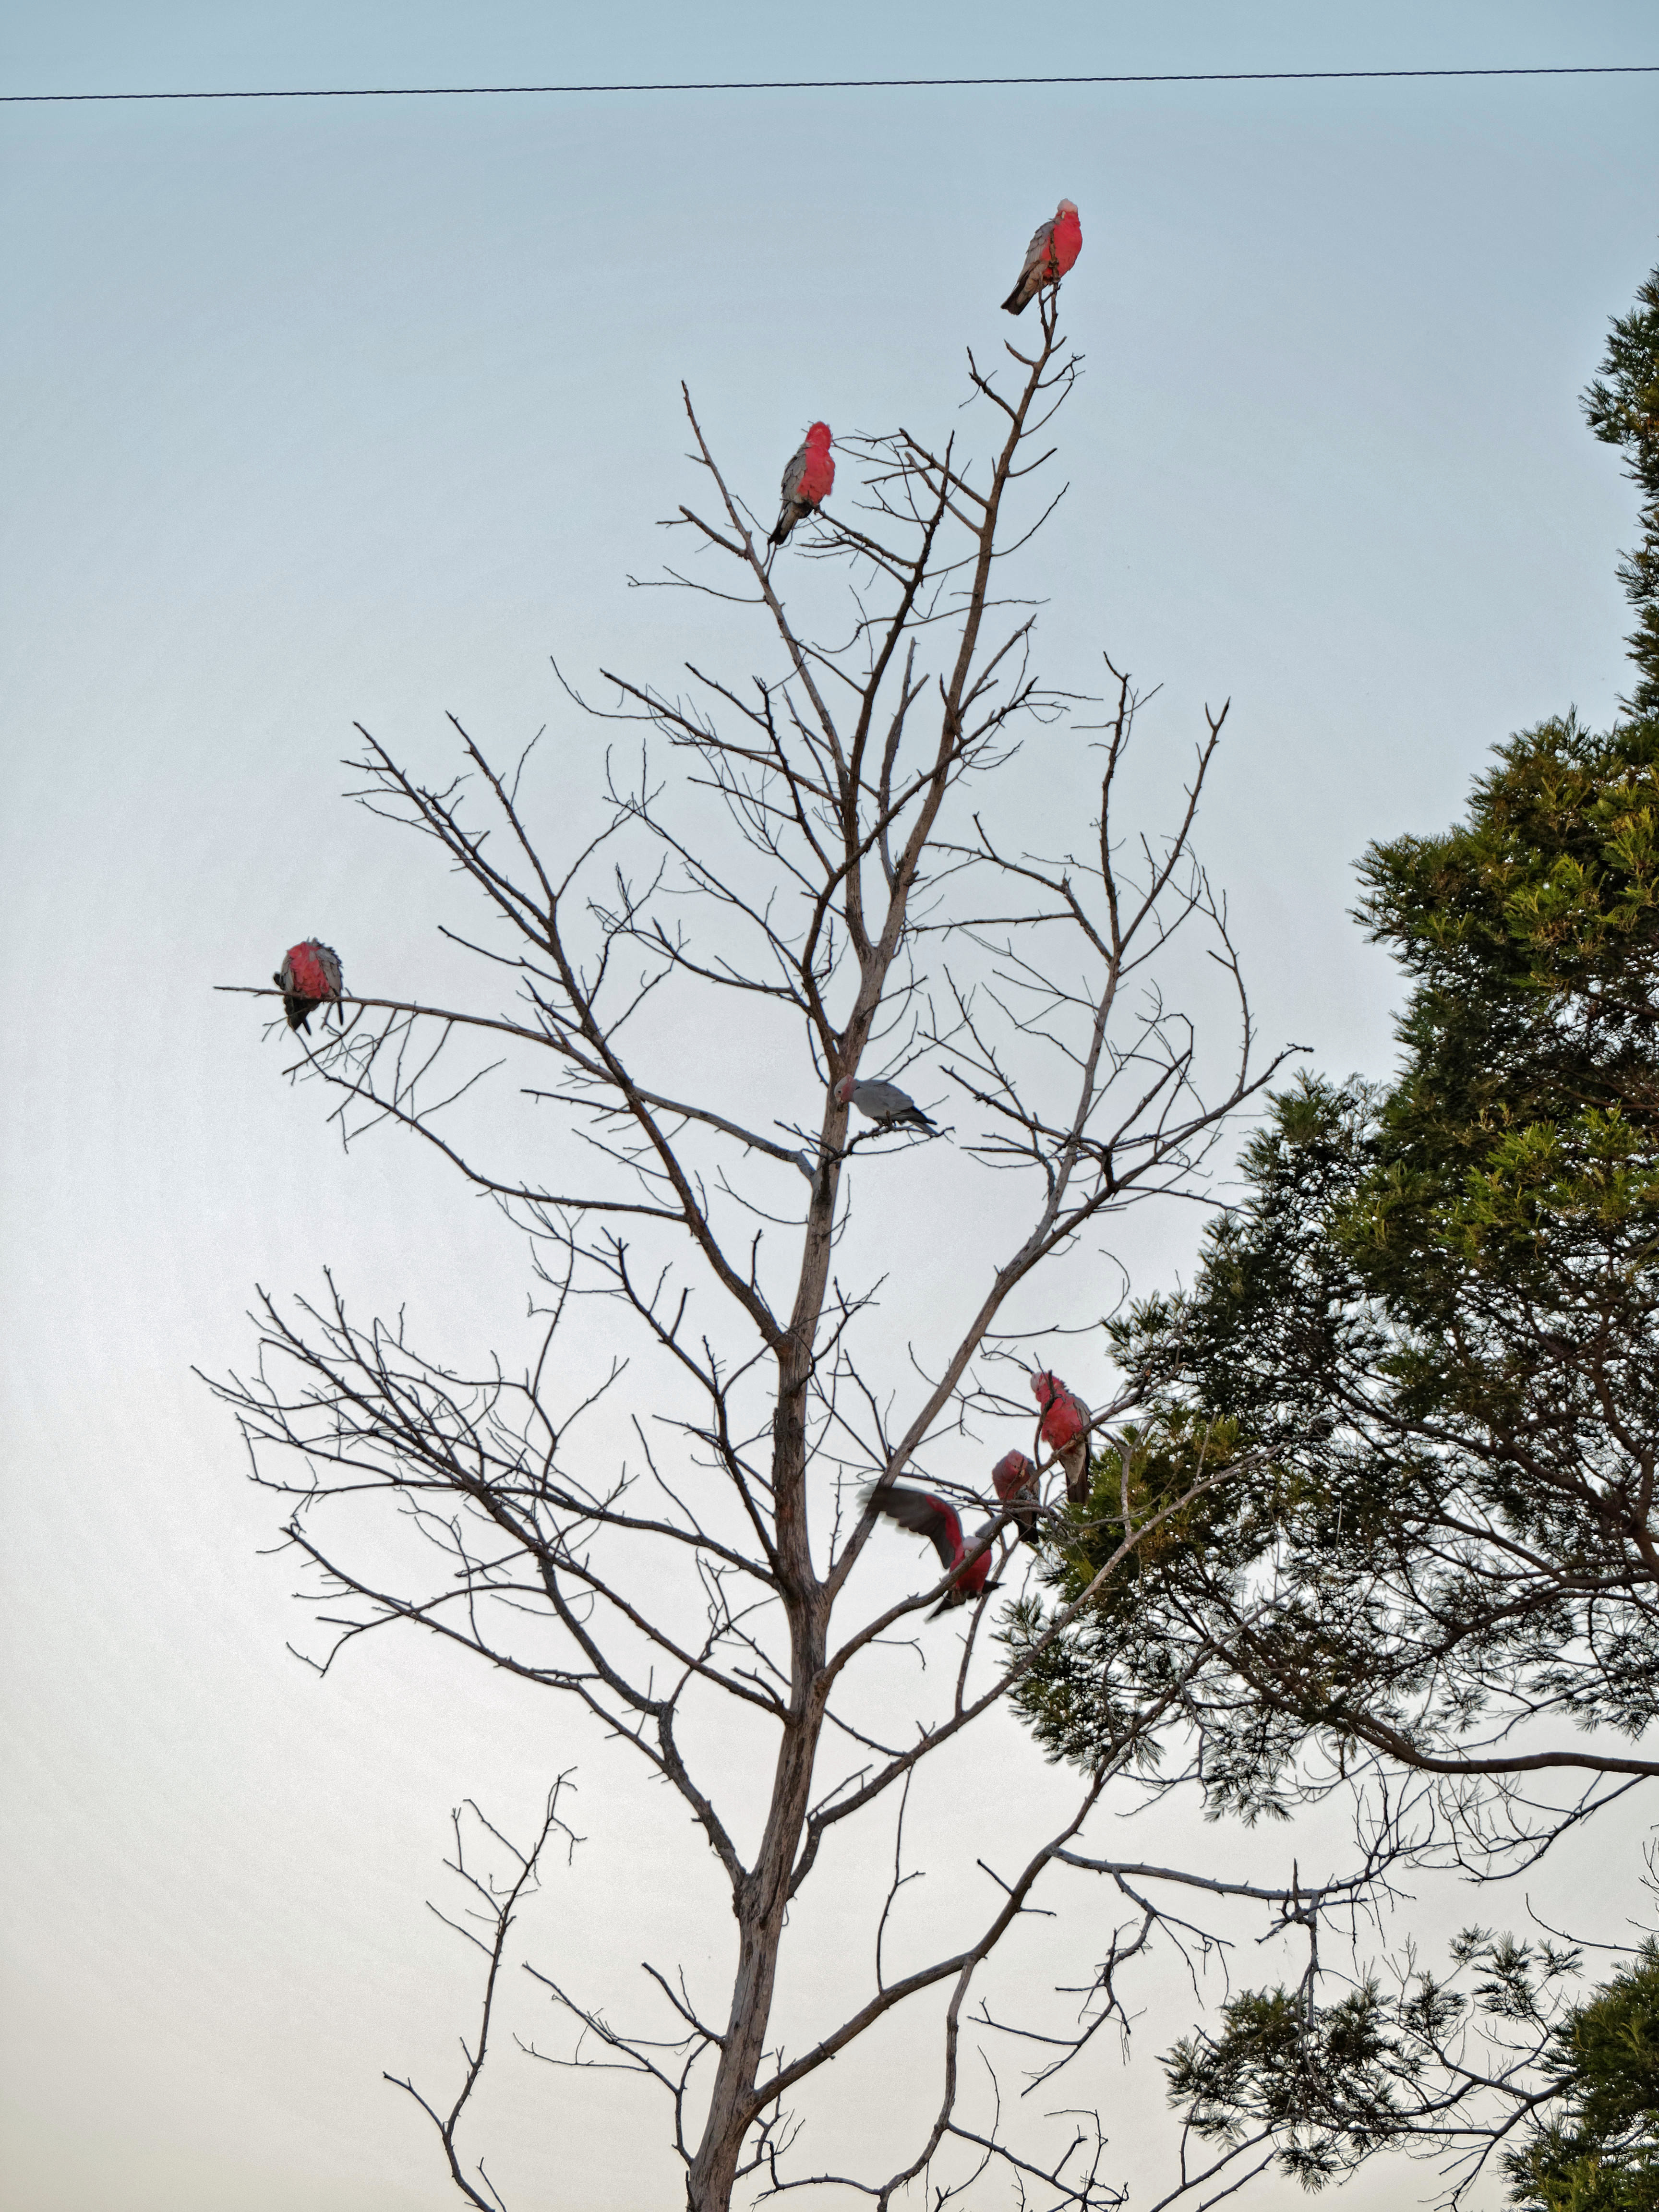 This should be Galahs-16.jpeg.  Is it missing?